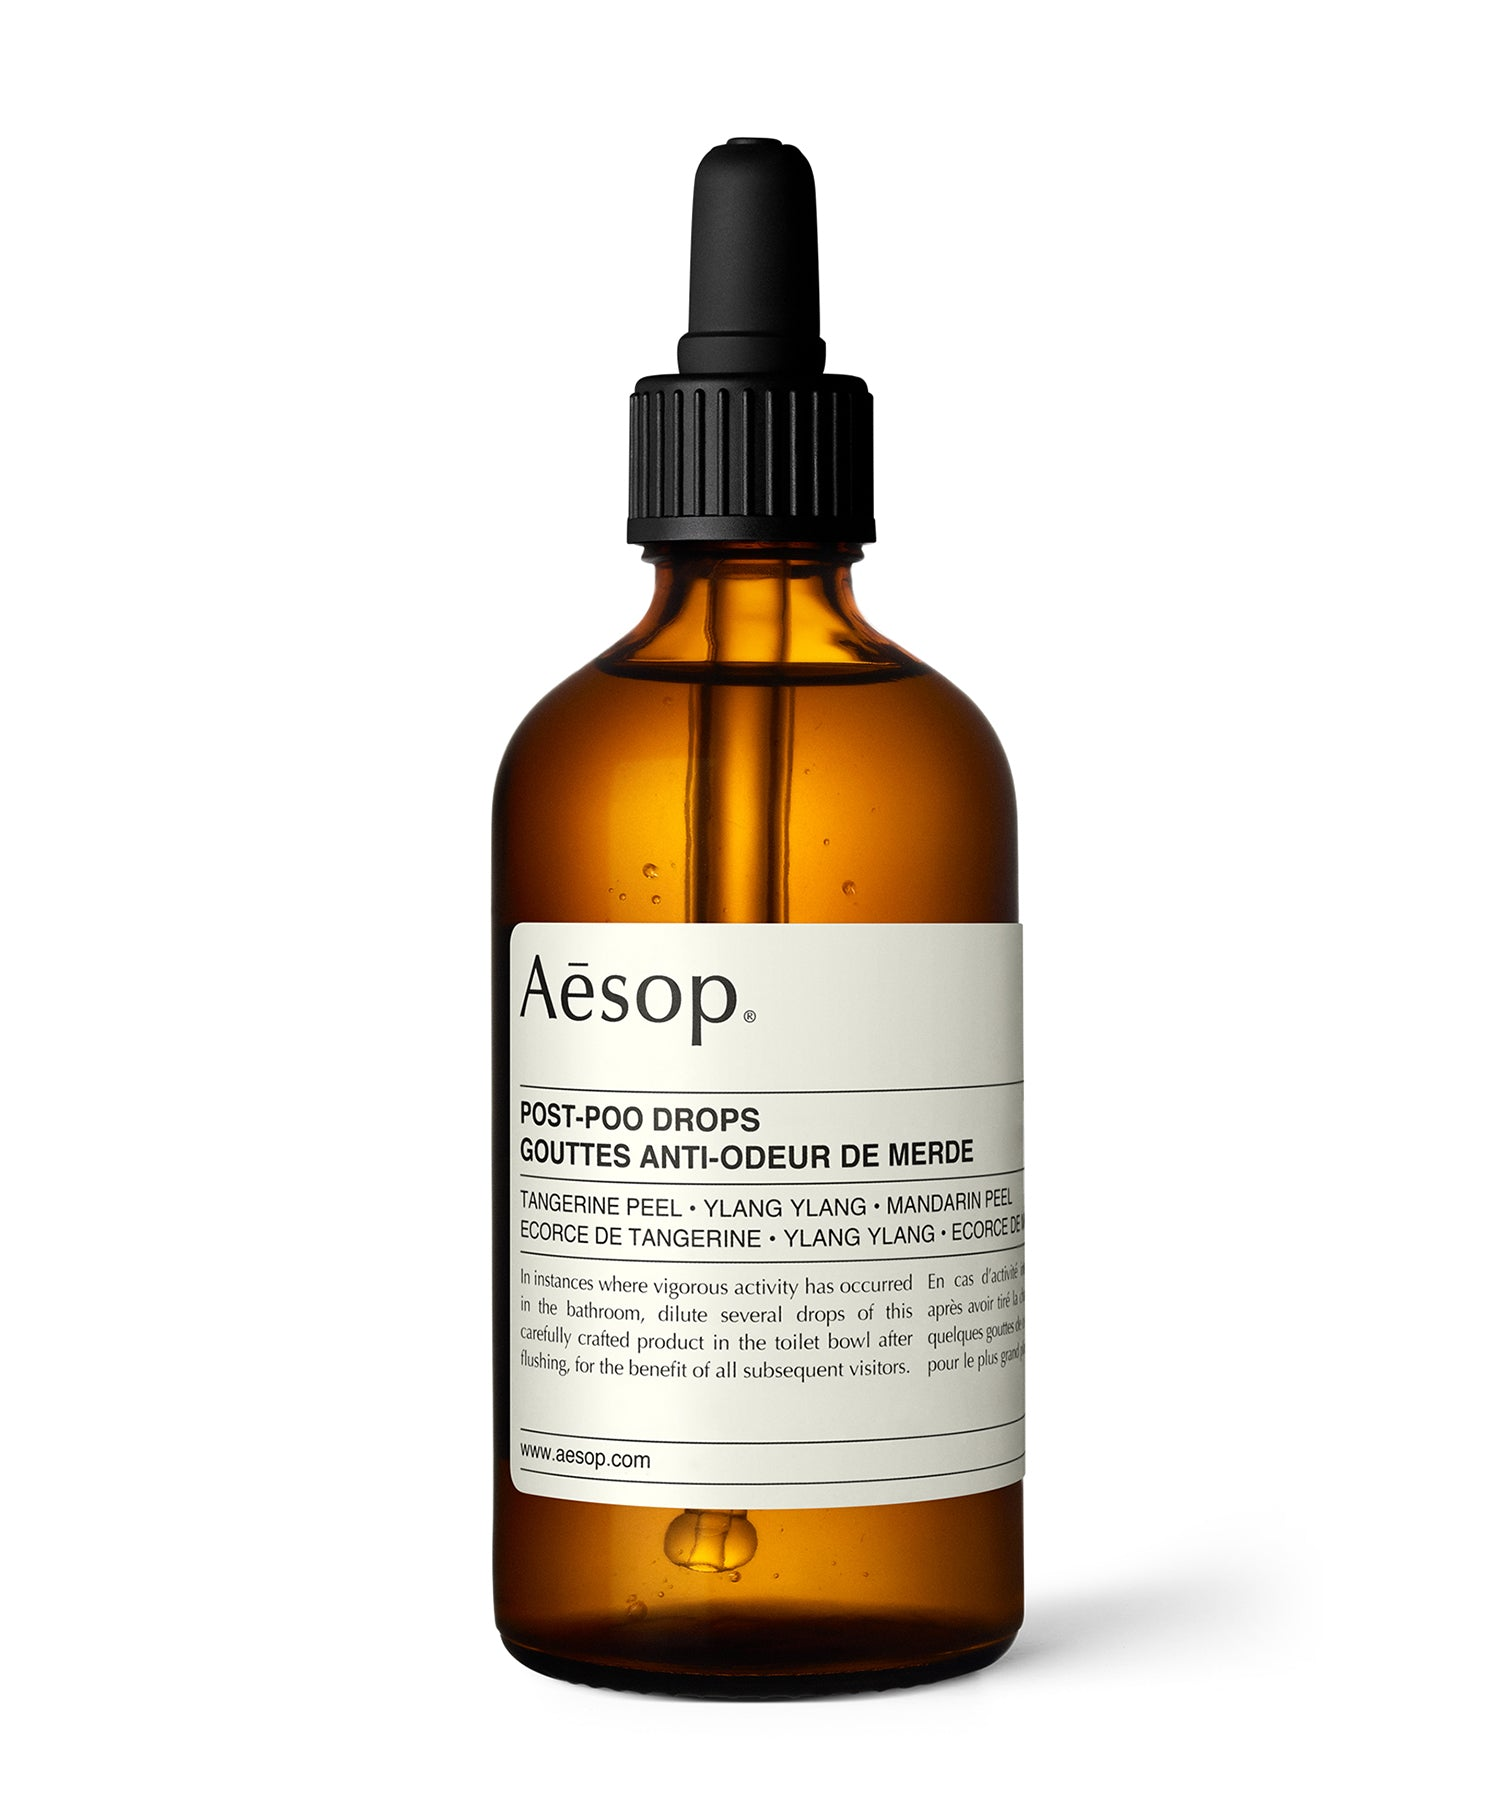 Aesop Post-poo Drops - BLACK